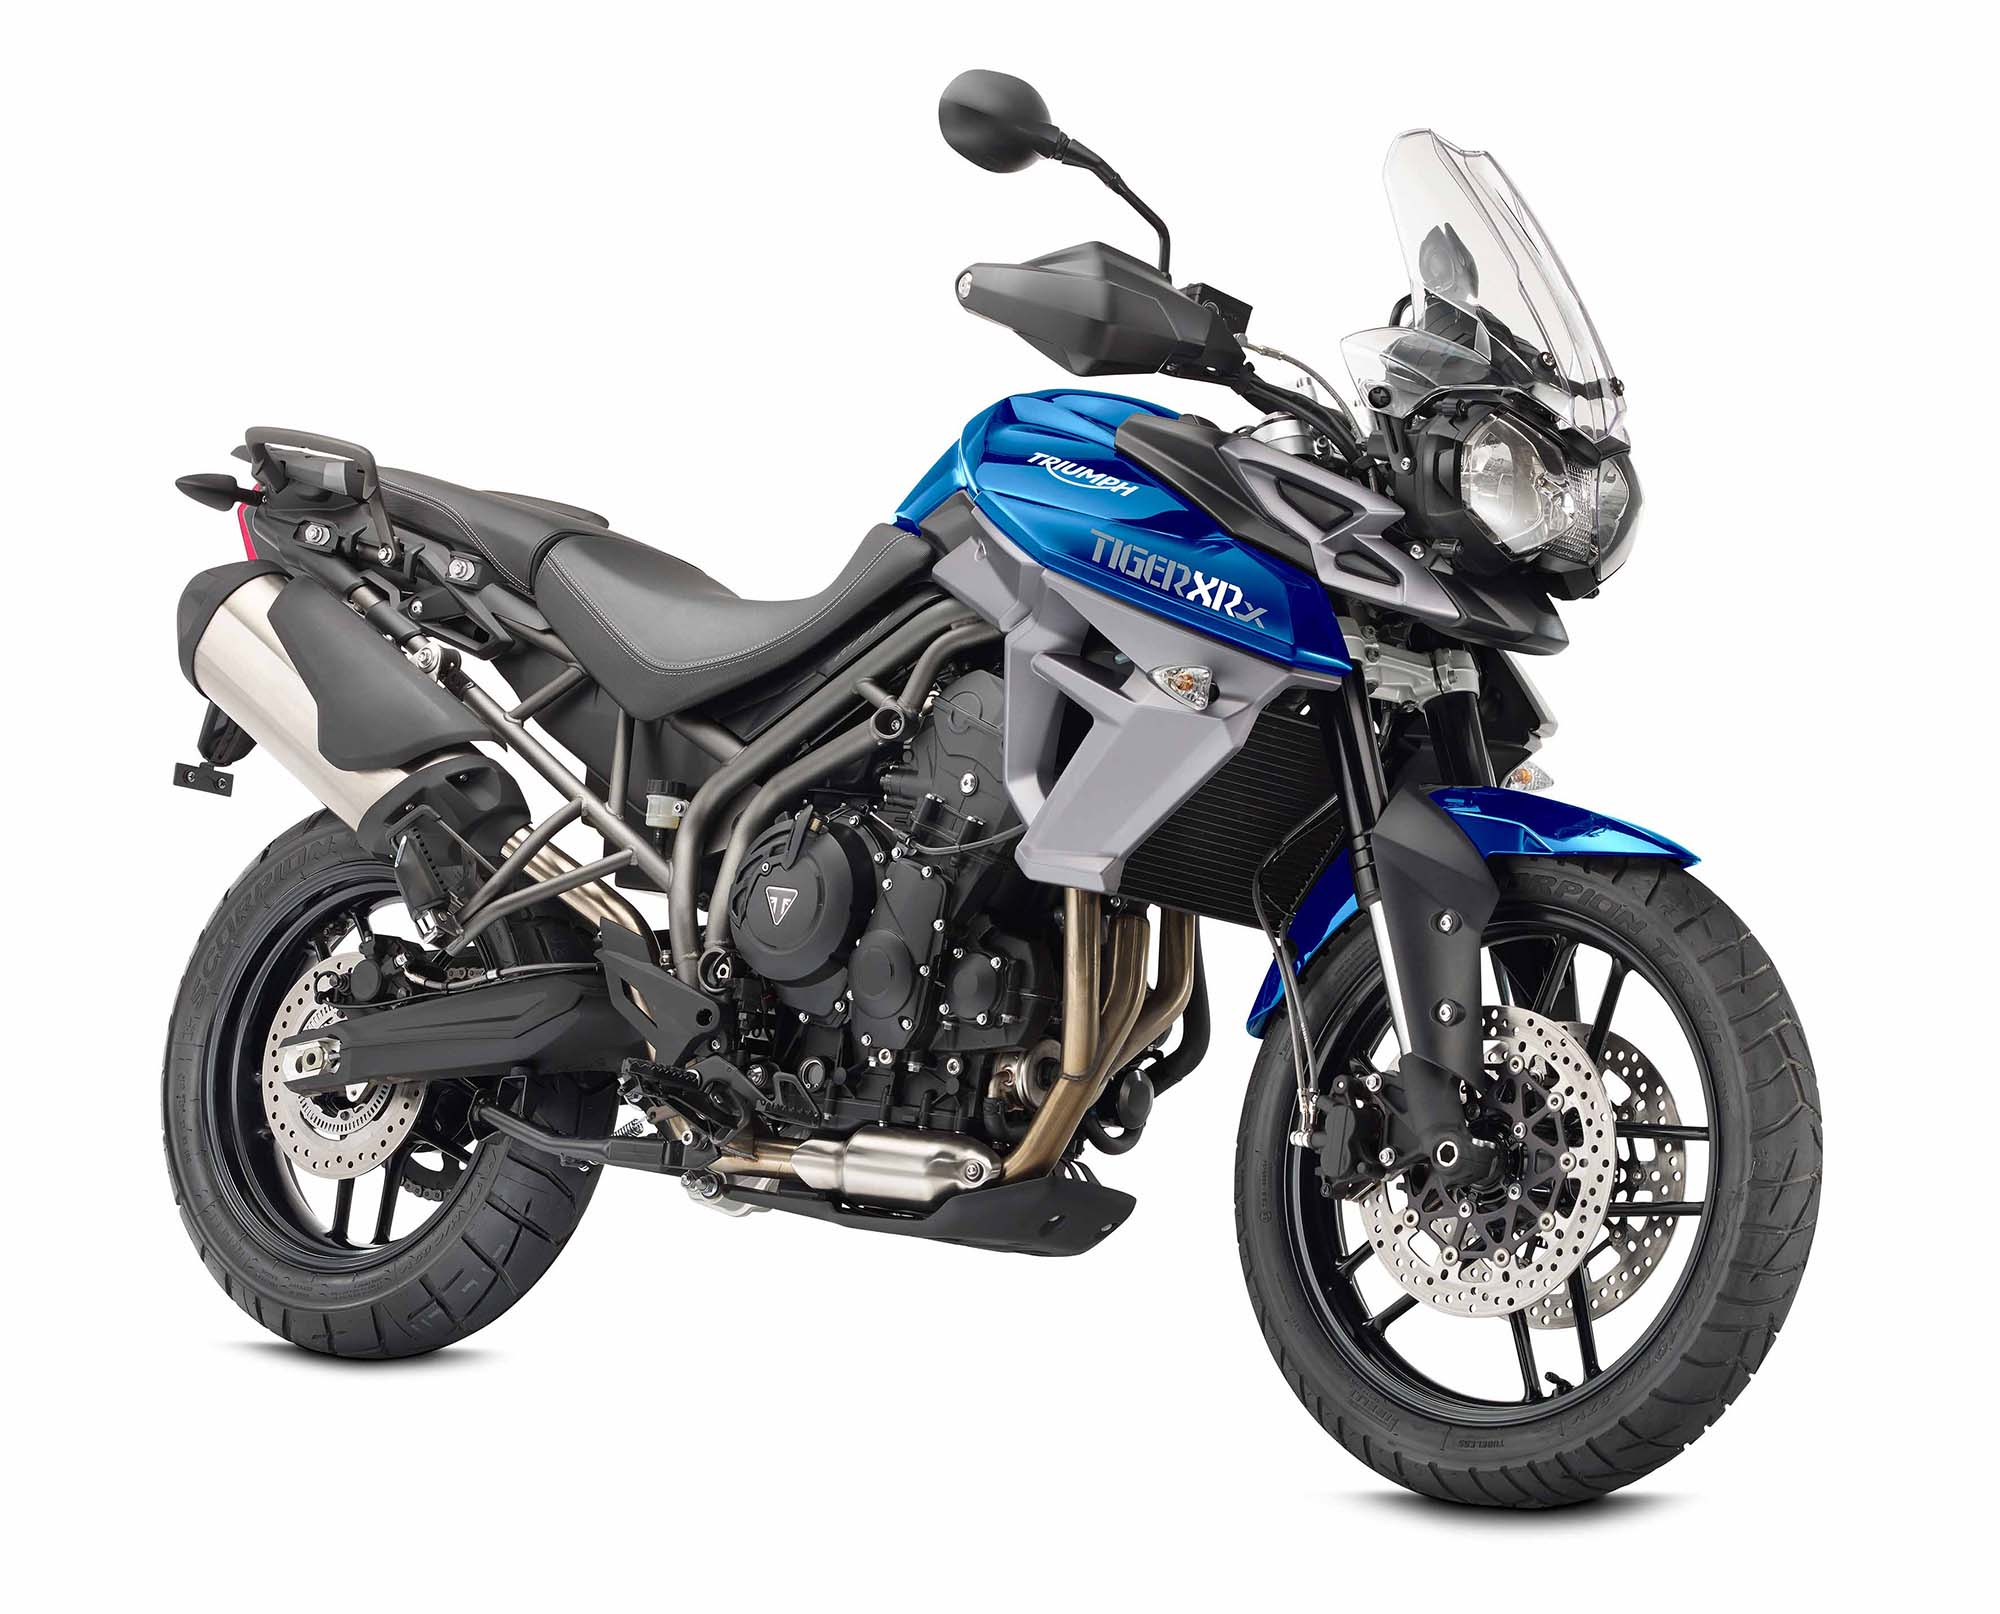 2015 Triumph Tiger 800 XRx - More, for the More On-Road - Asphalt ...